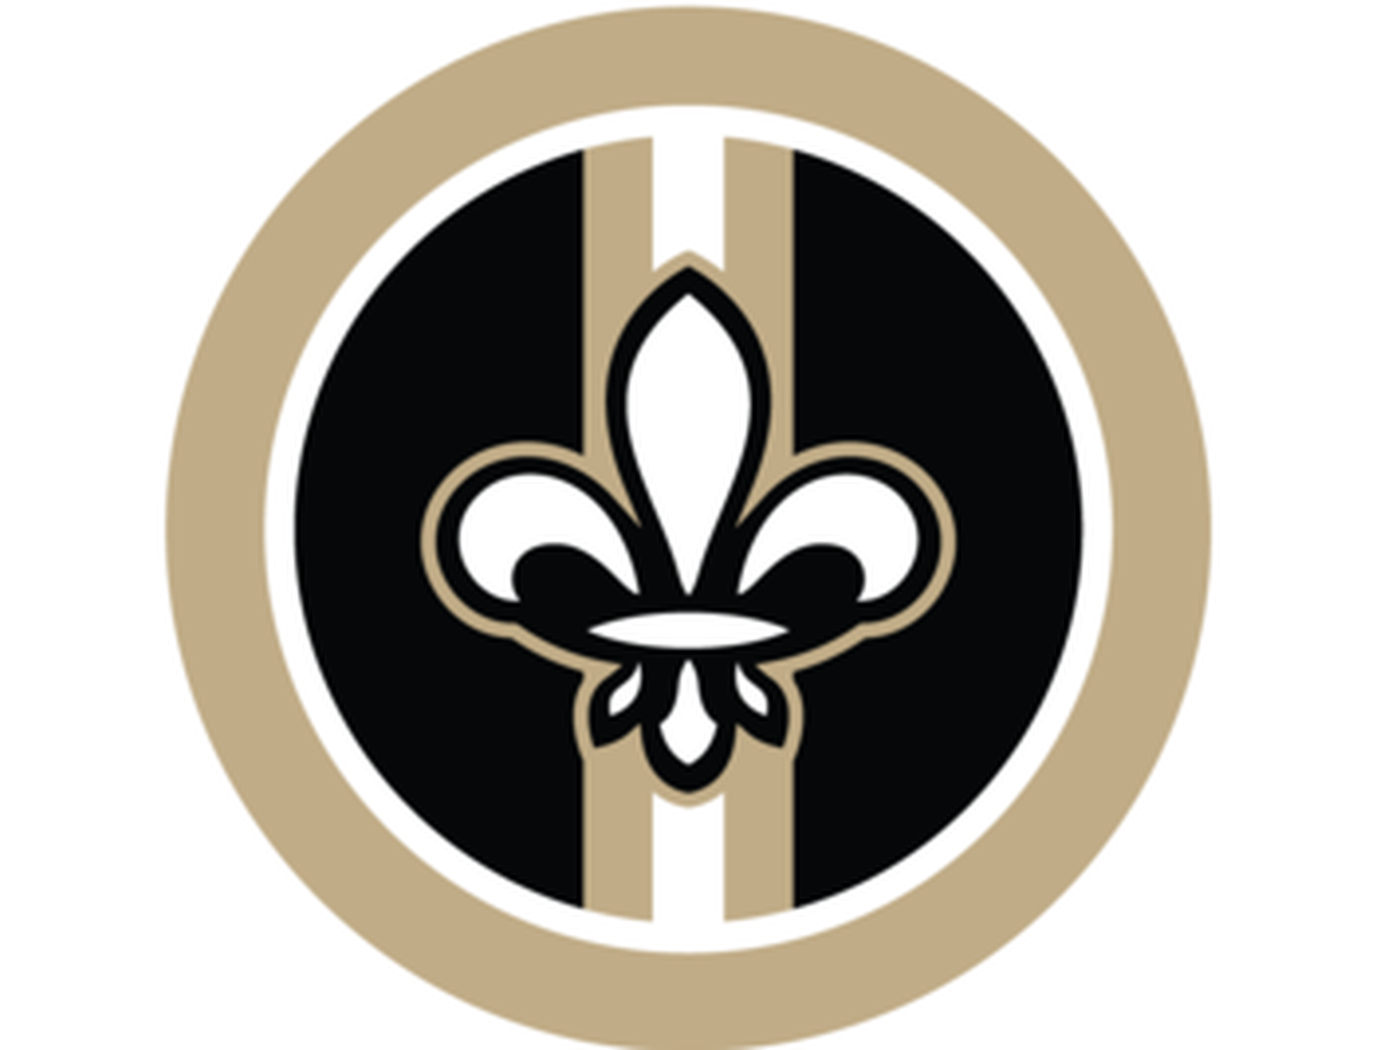 New orleans saints football clipart svg freeuse New Orleans Saints Library - What's On Your Bookshelf? - Canal ... svg freeuse